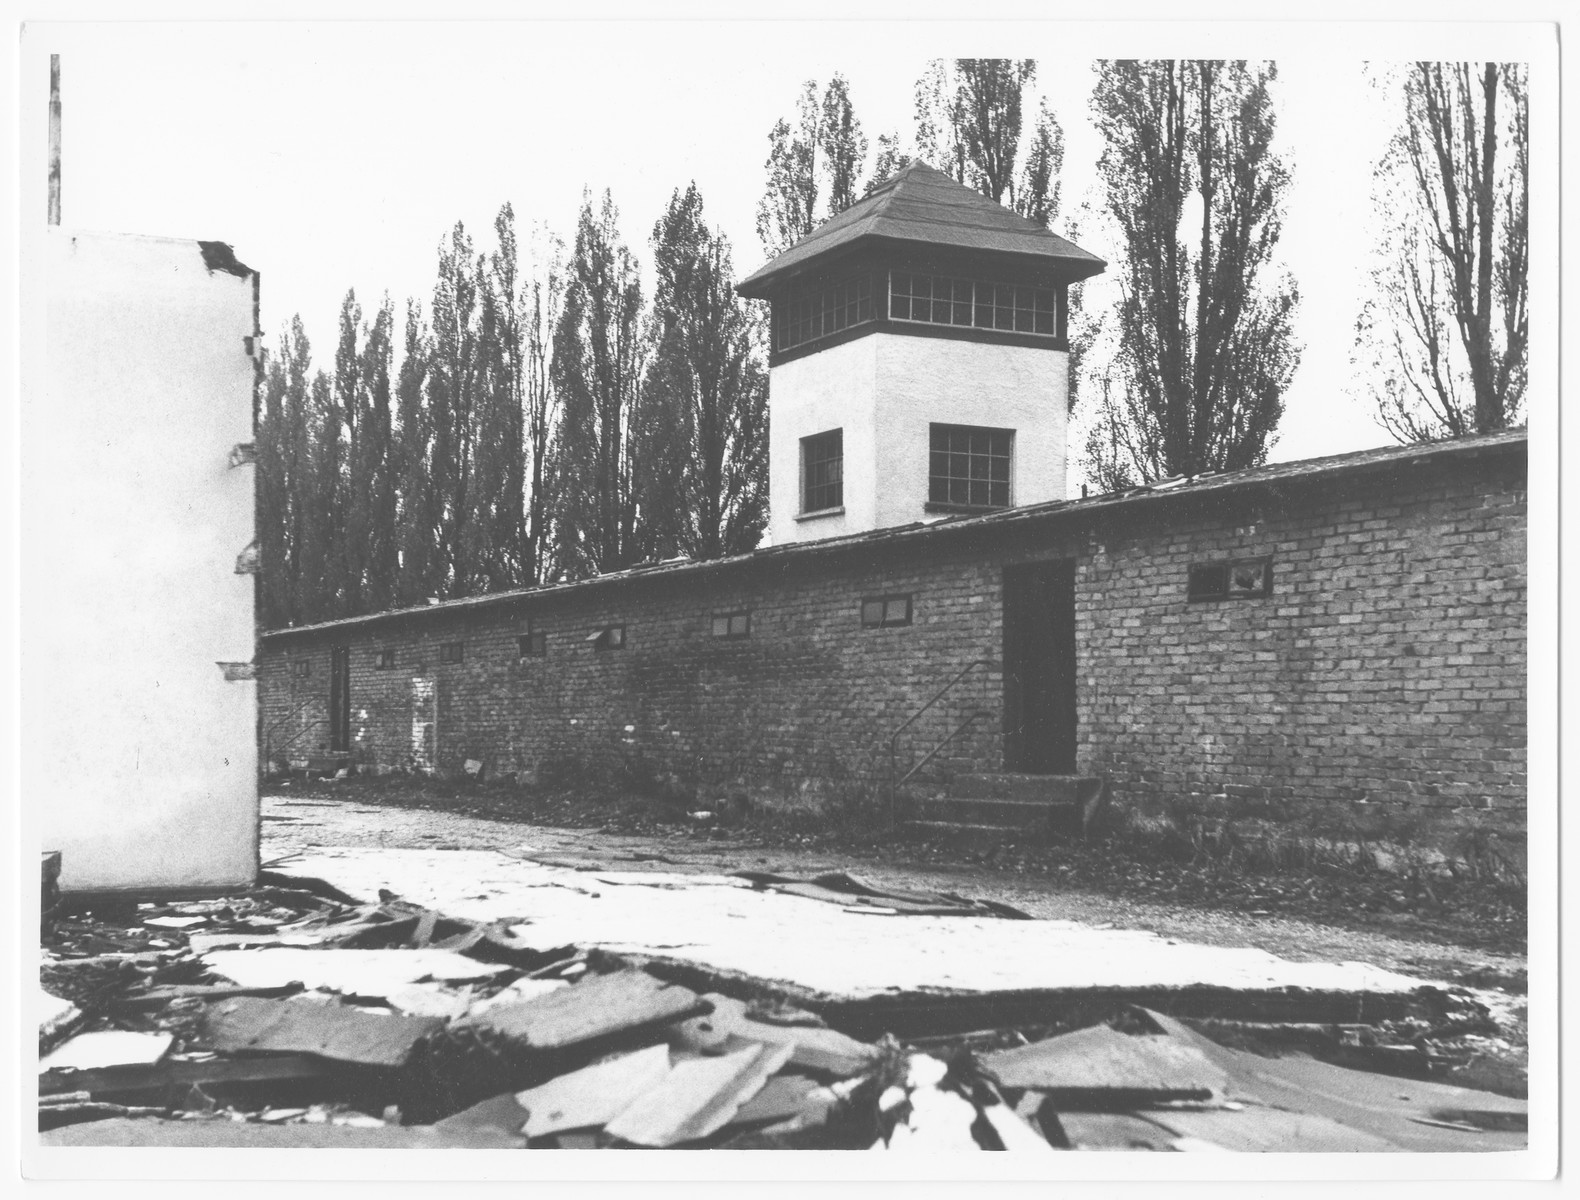 Postwar photograph of the watch tower of the Dachau concentration camp.